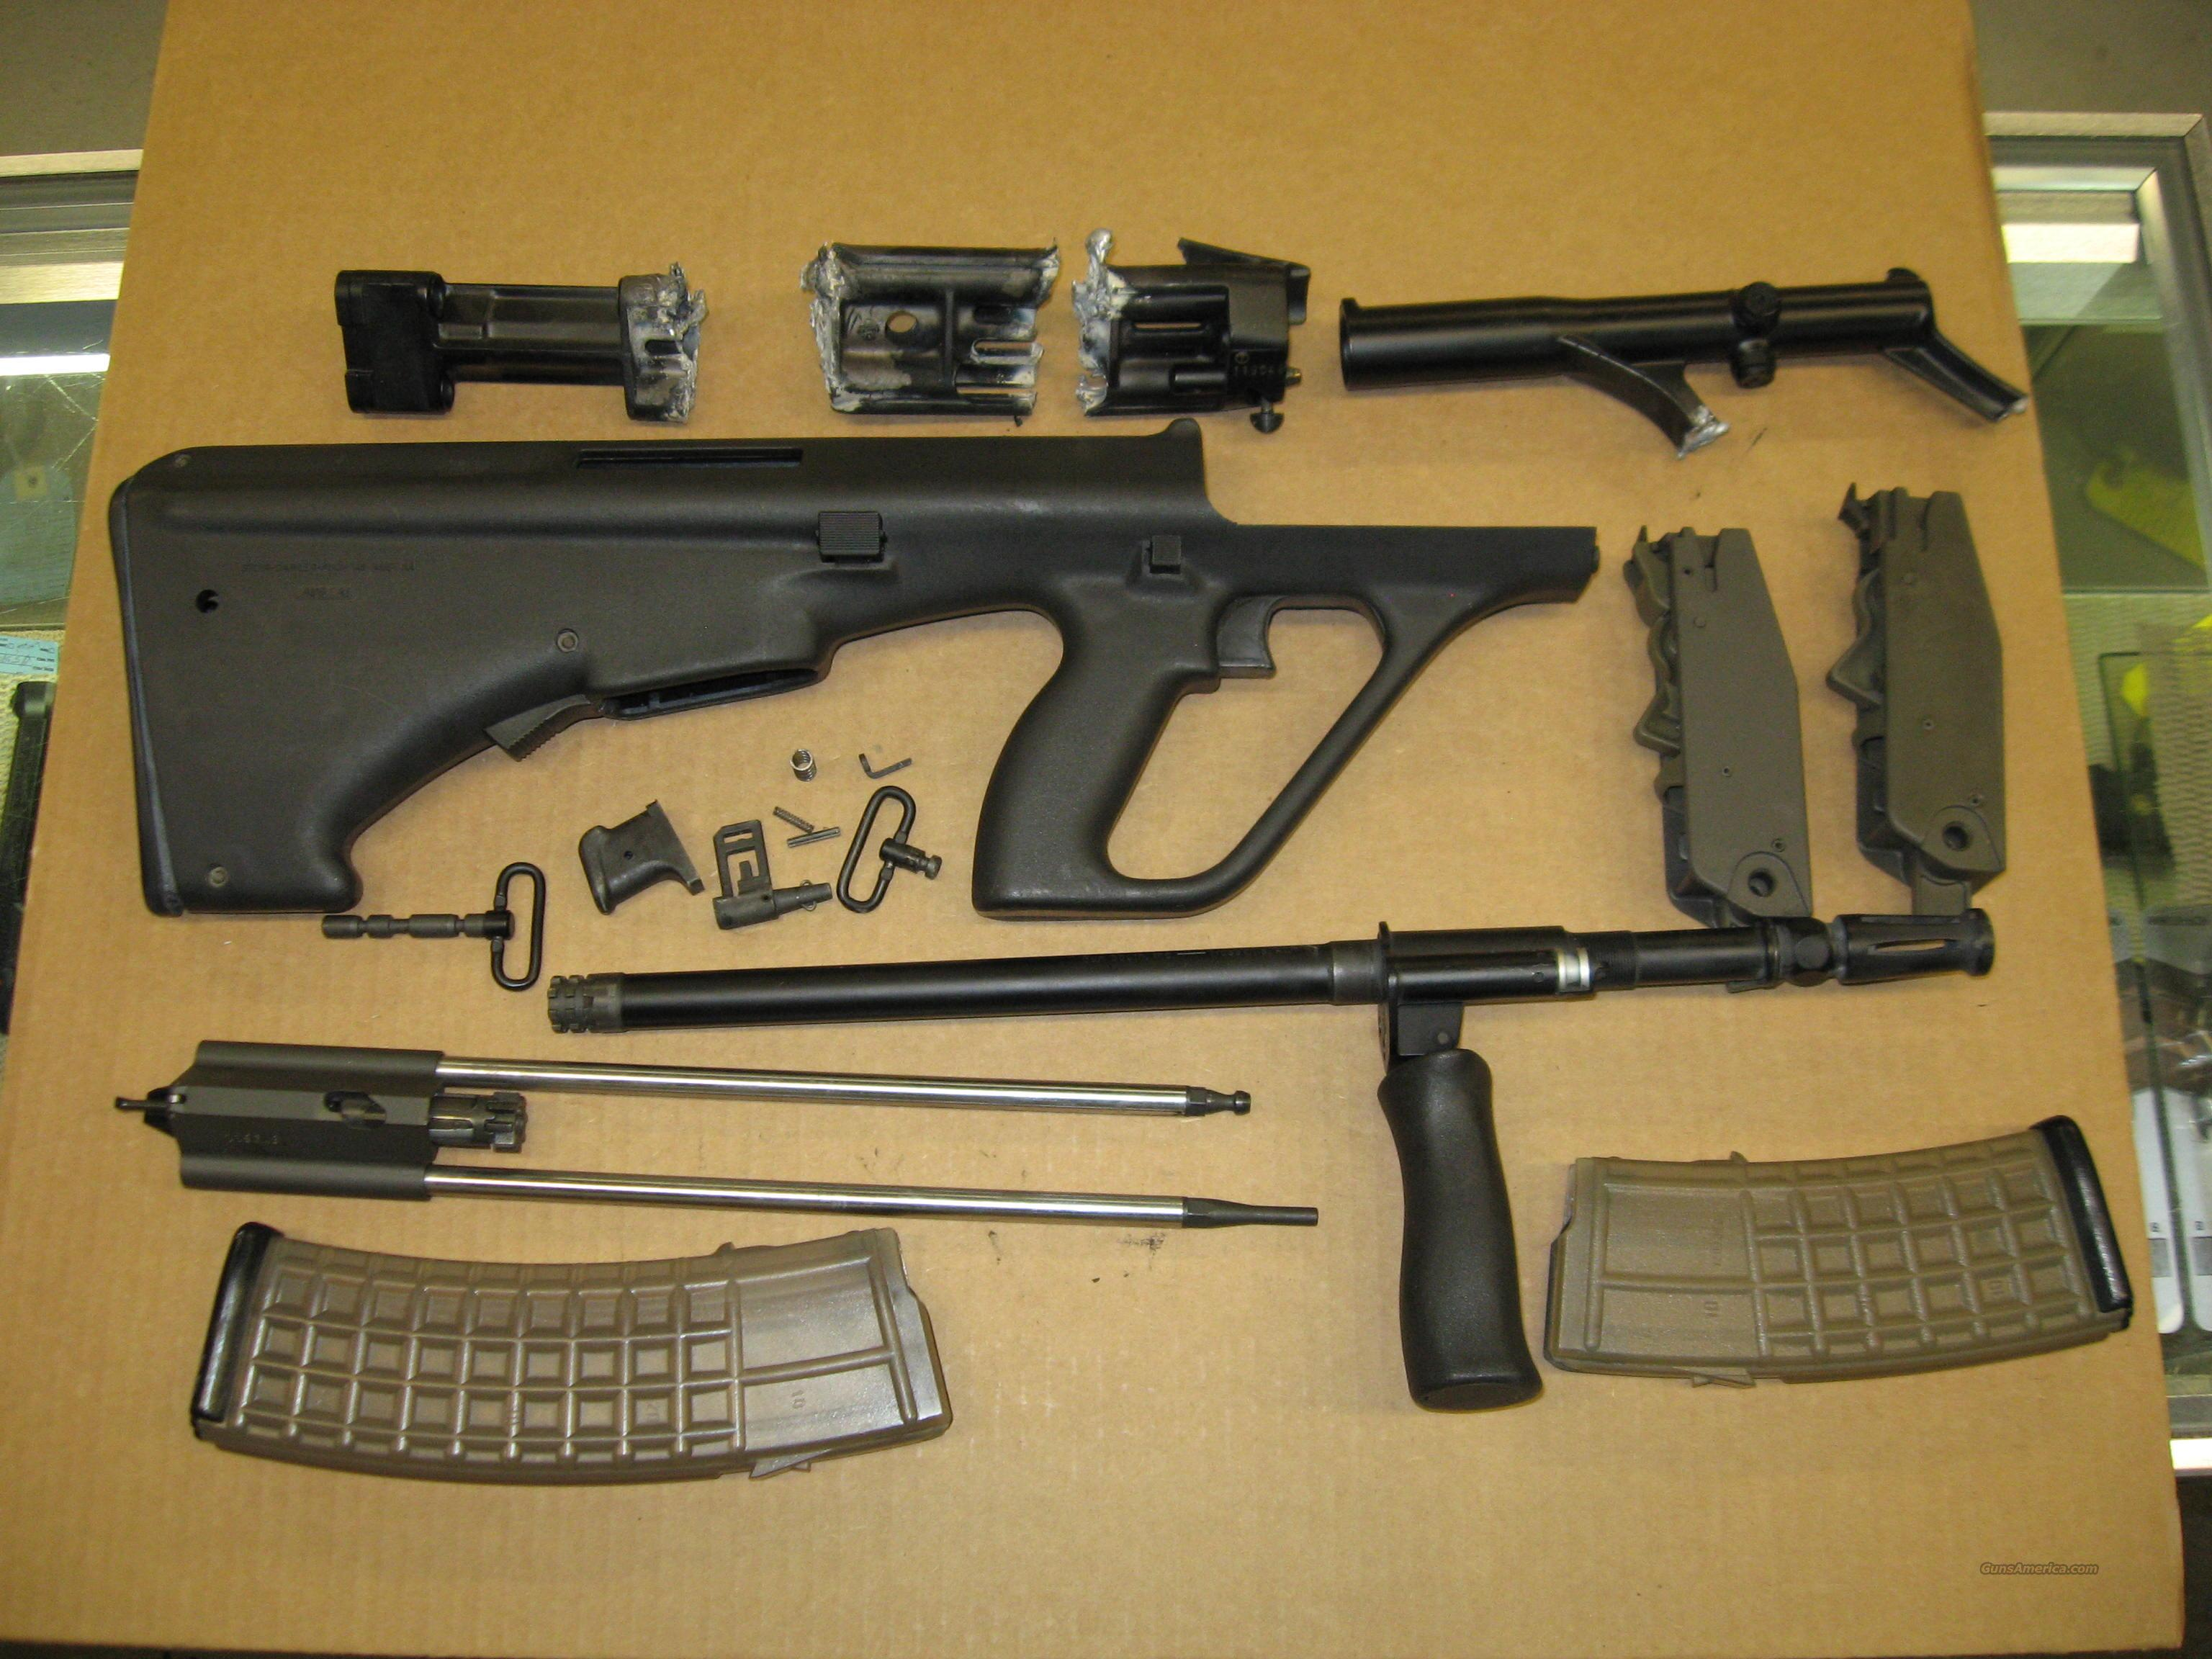 STEYR AUG-P 223 MACHINE GUN PARTS for sale